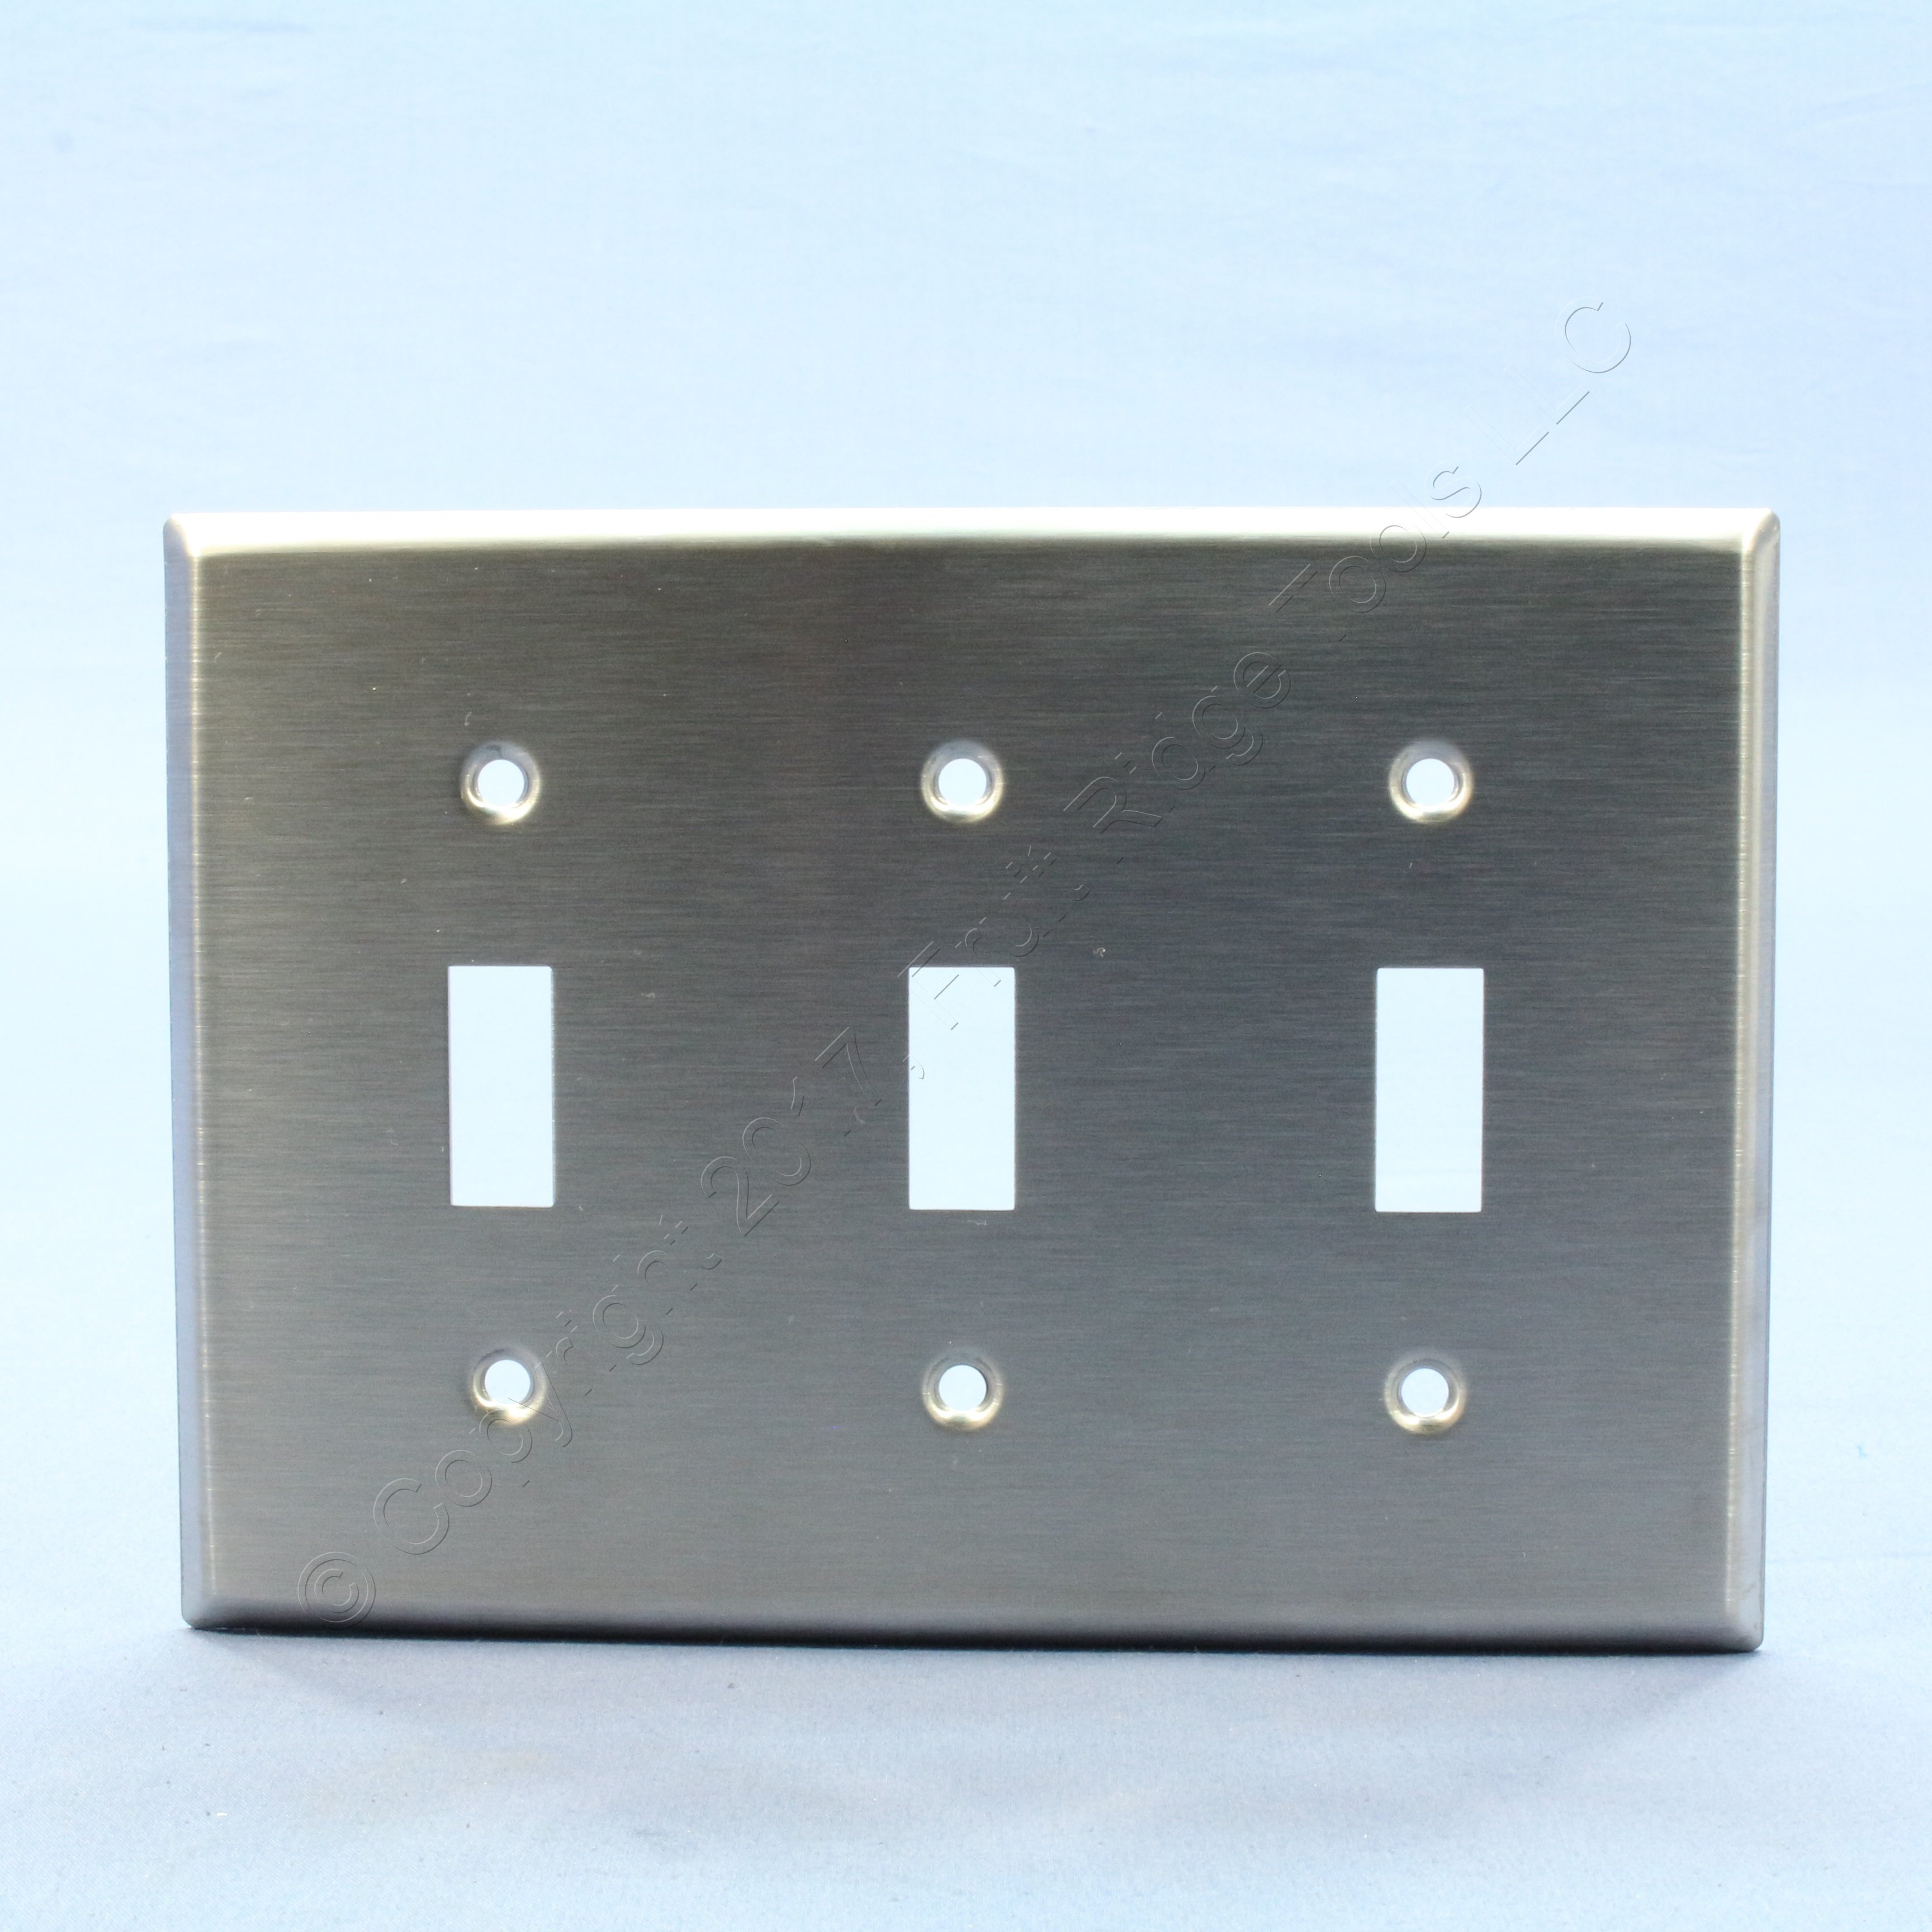 Leviton Stainless Steel 3 Gang Toggle Switch Cover Wall